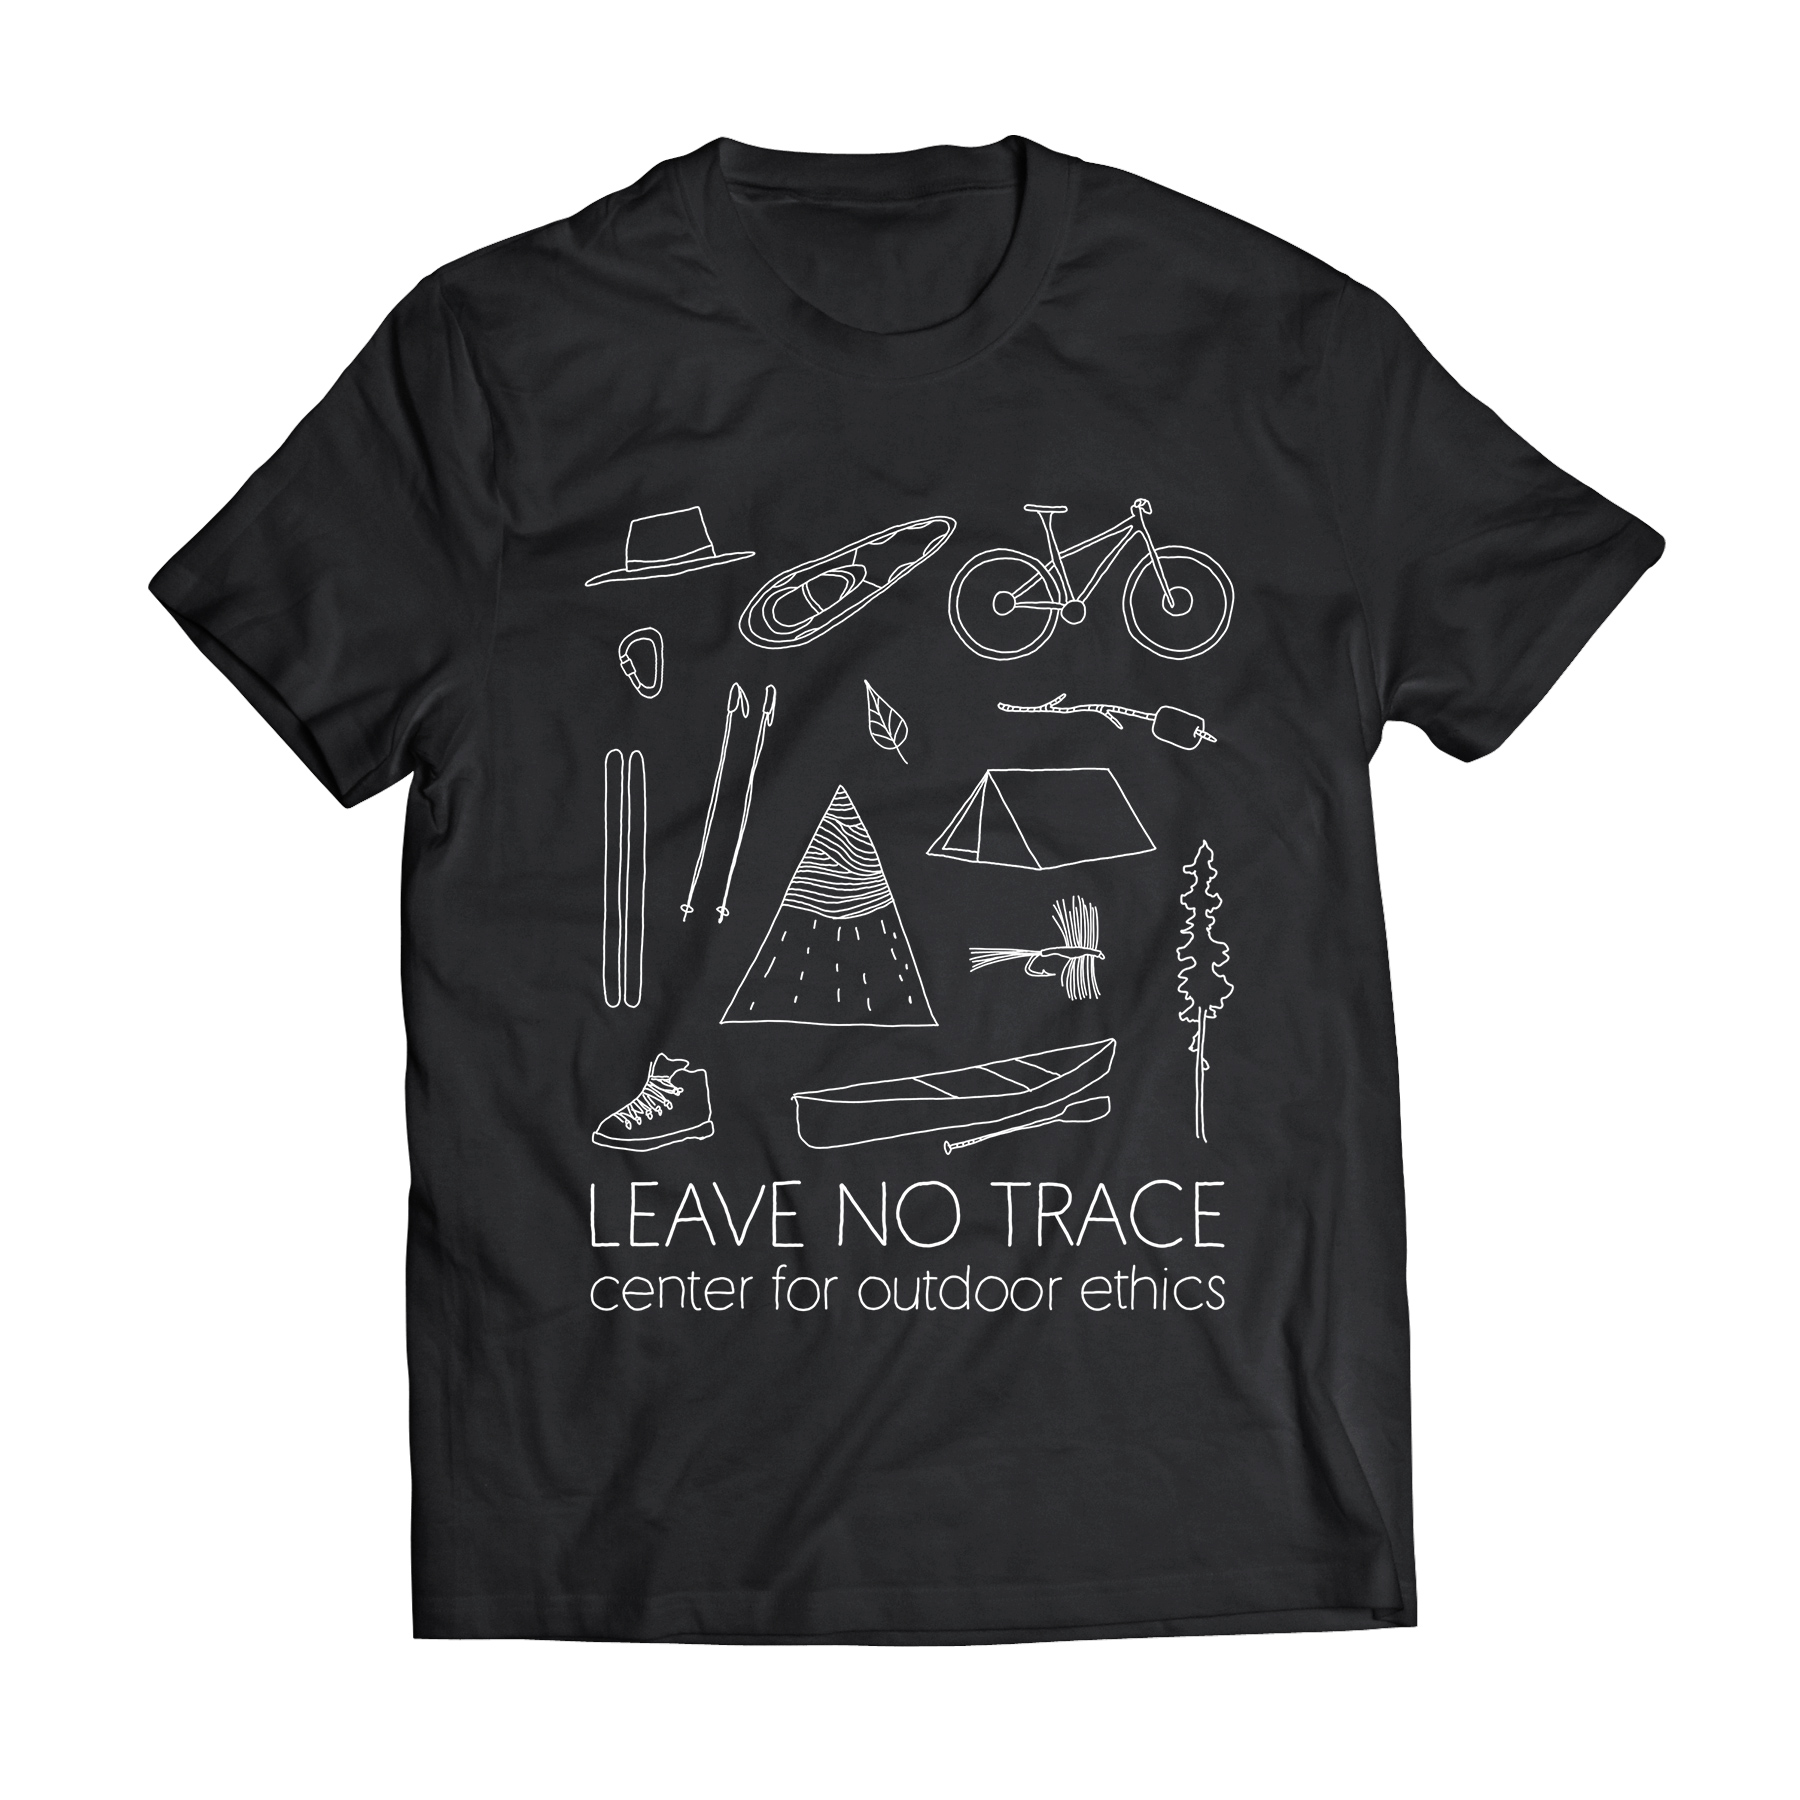 Leave No Trace T-Shirt Design